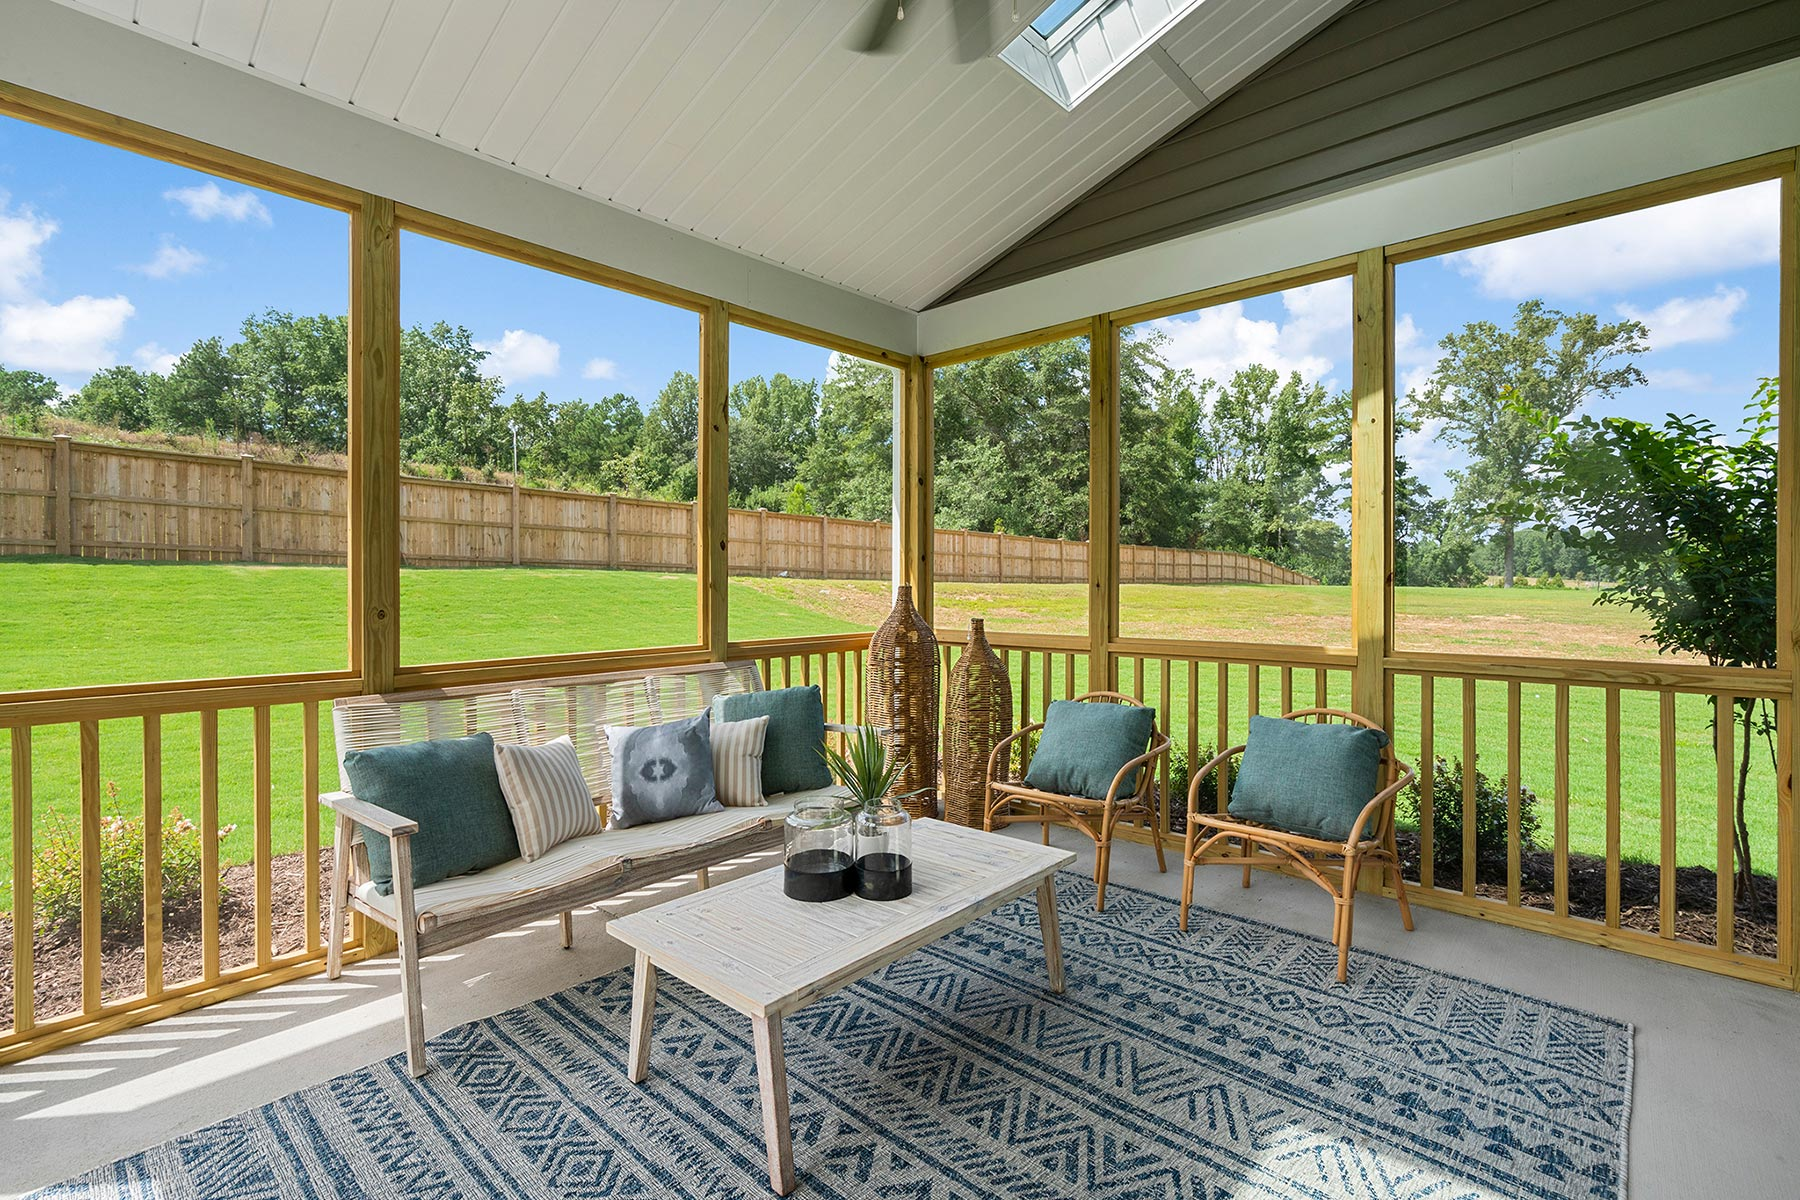 Carteret Plan Others at Bent Tree in Fuquay-Varina North Carolina by Mattamy Homes